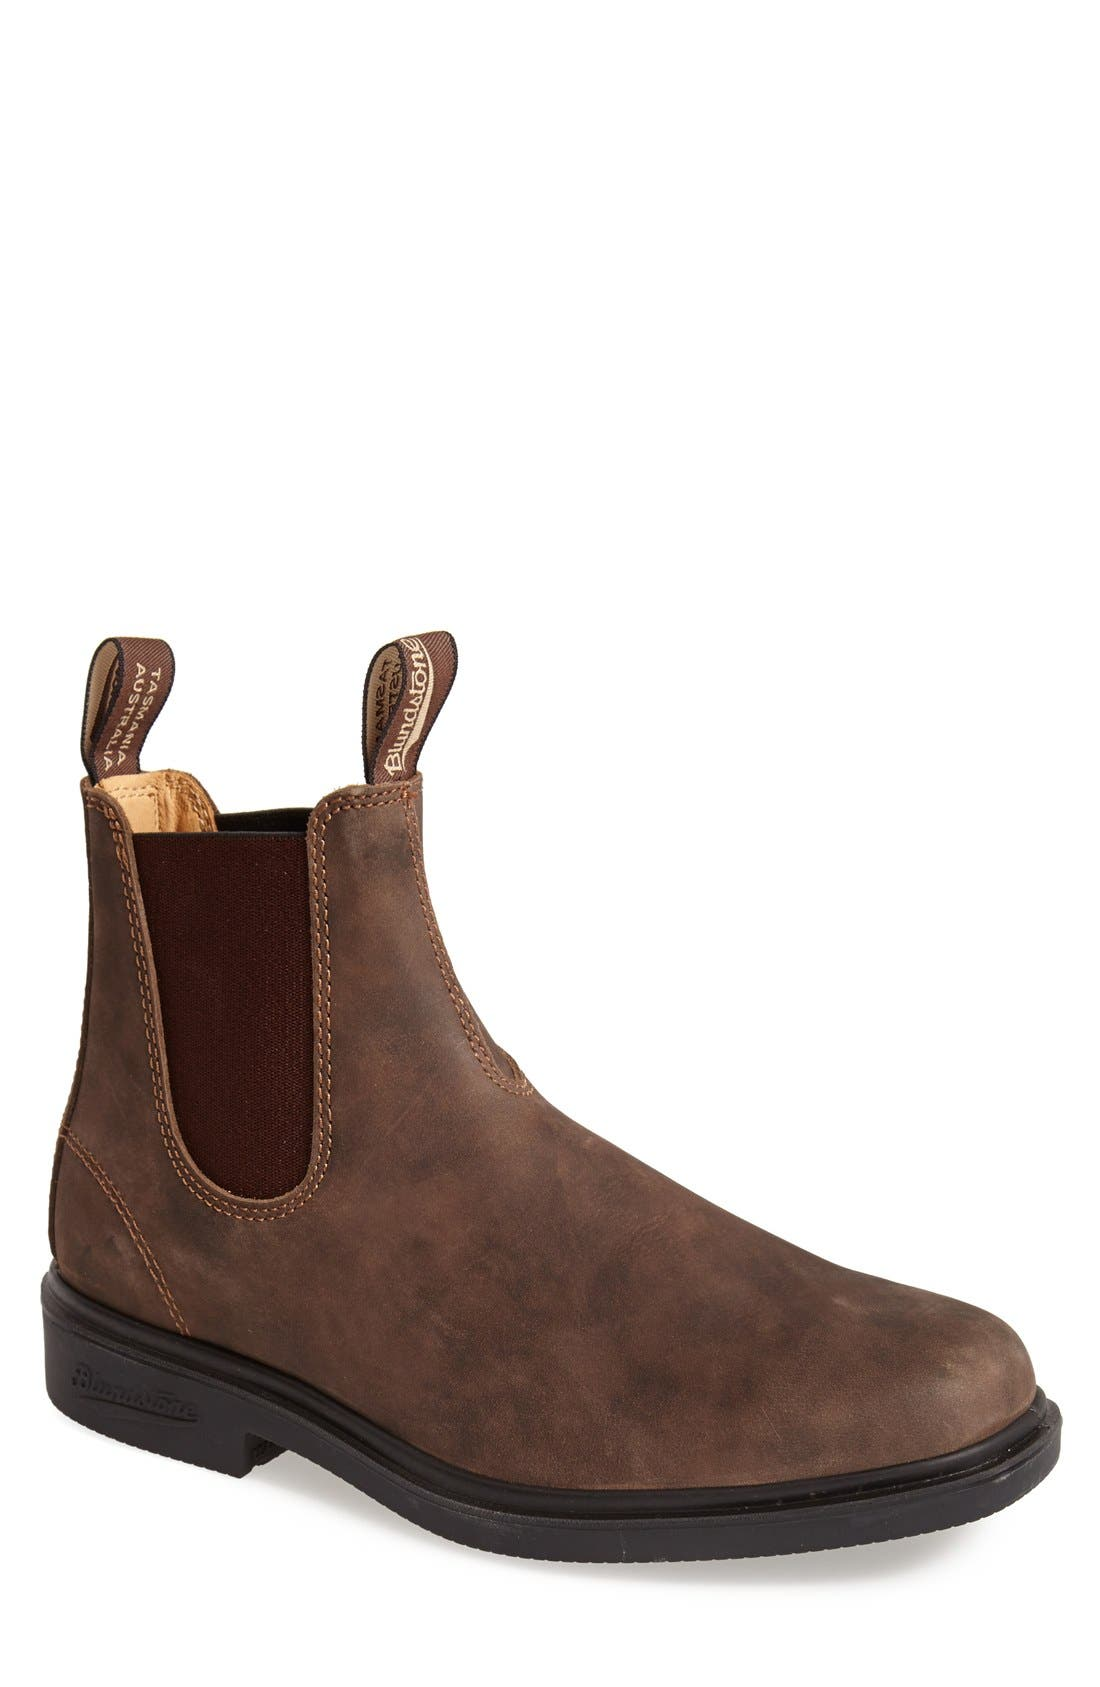 Blundstone Footwear Chelsea Boot (Men)